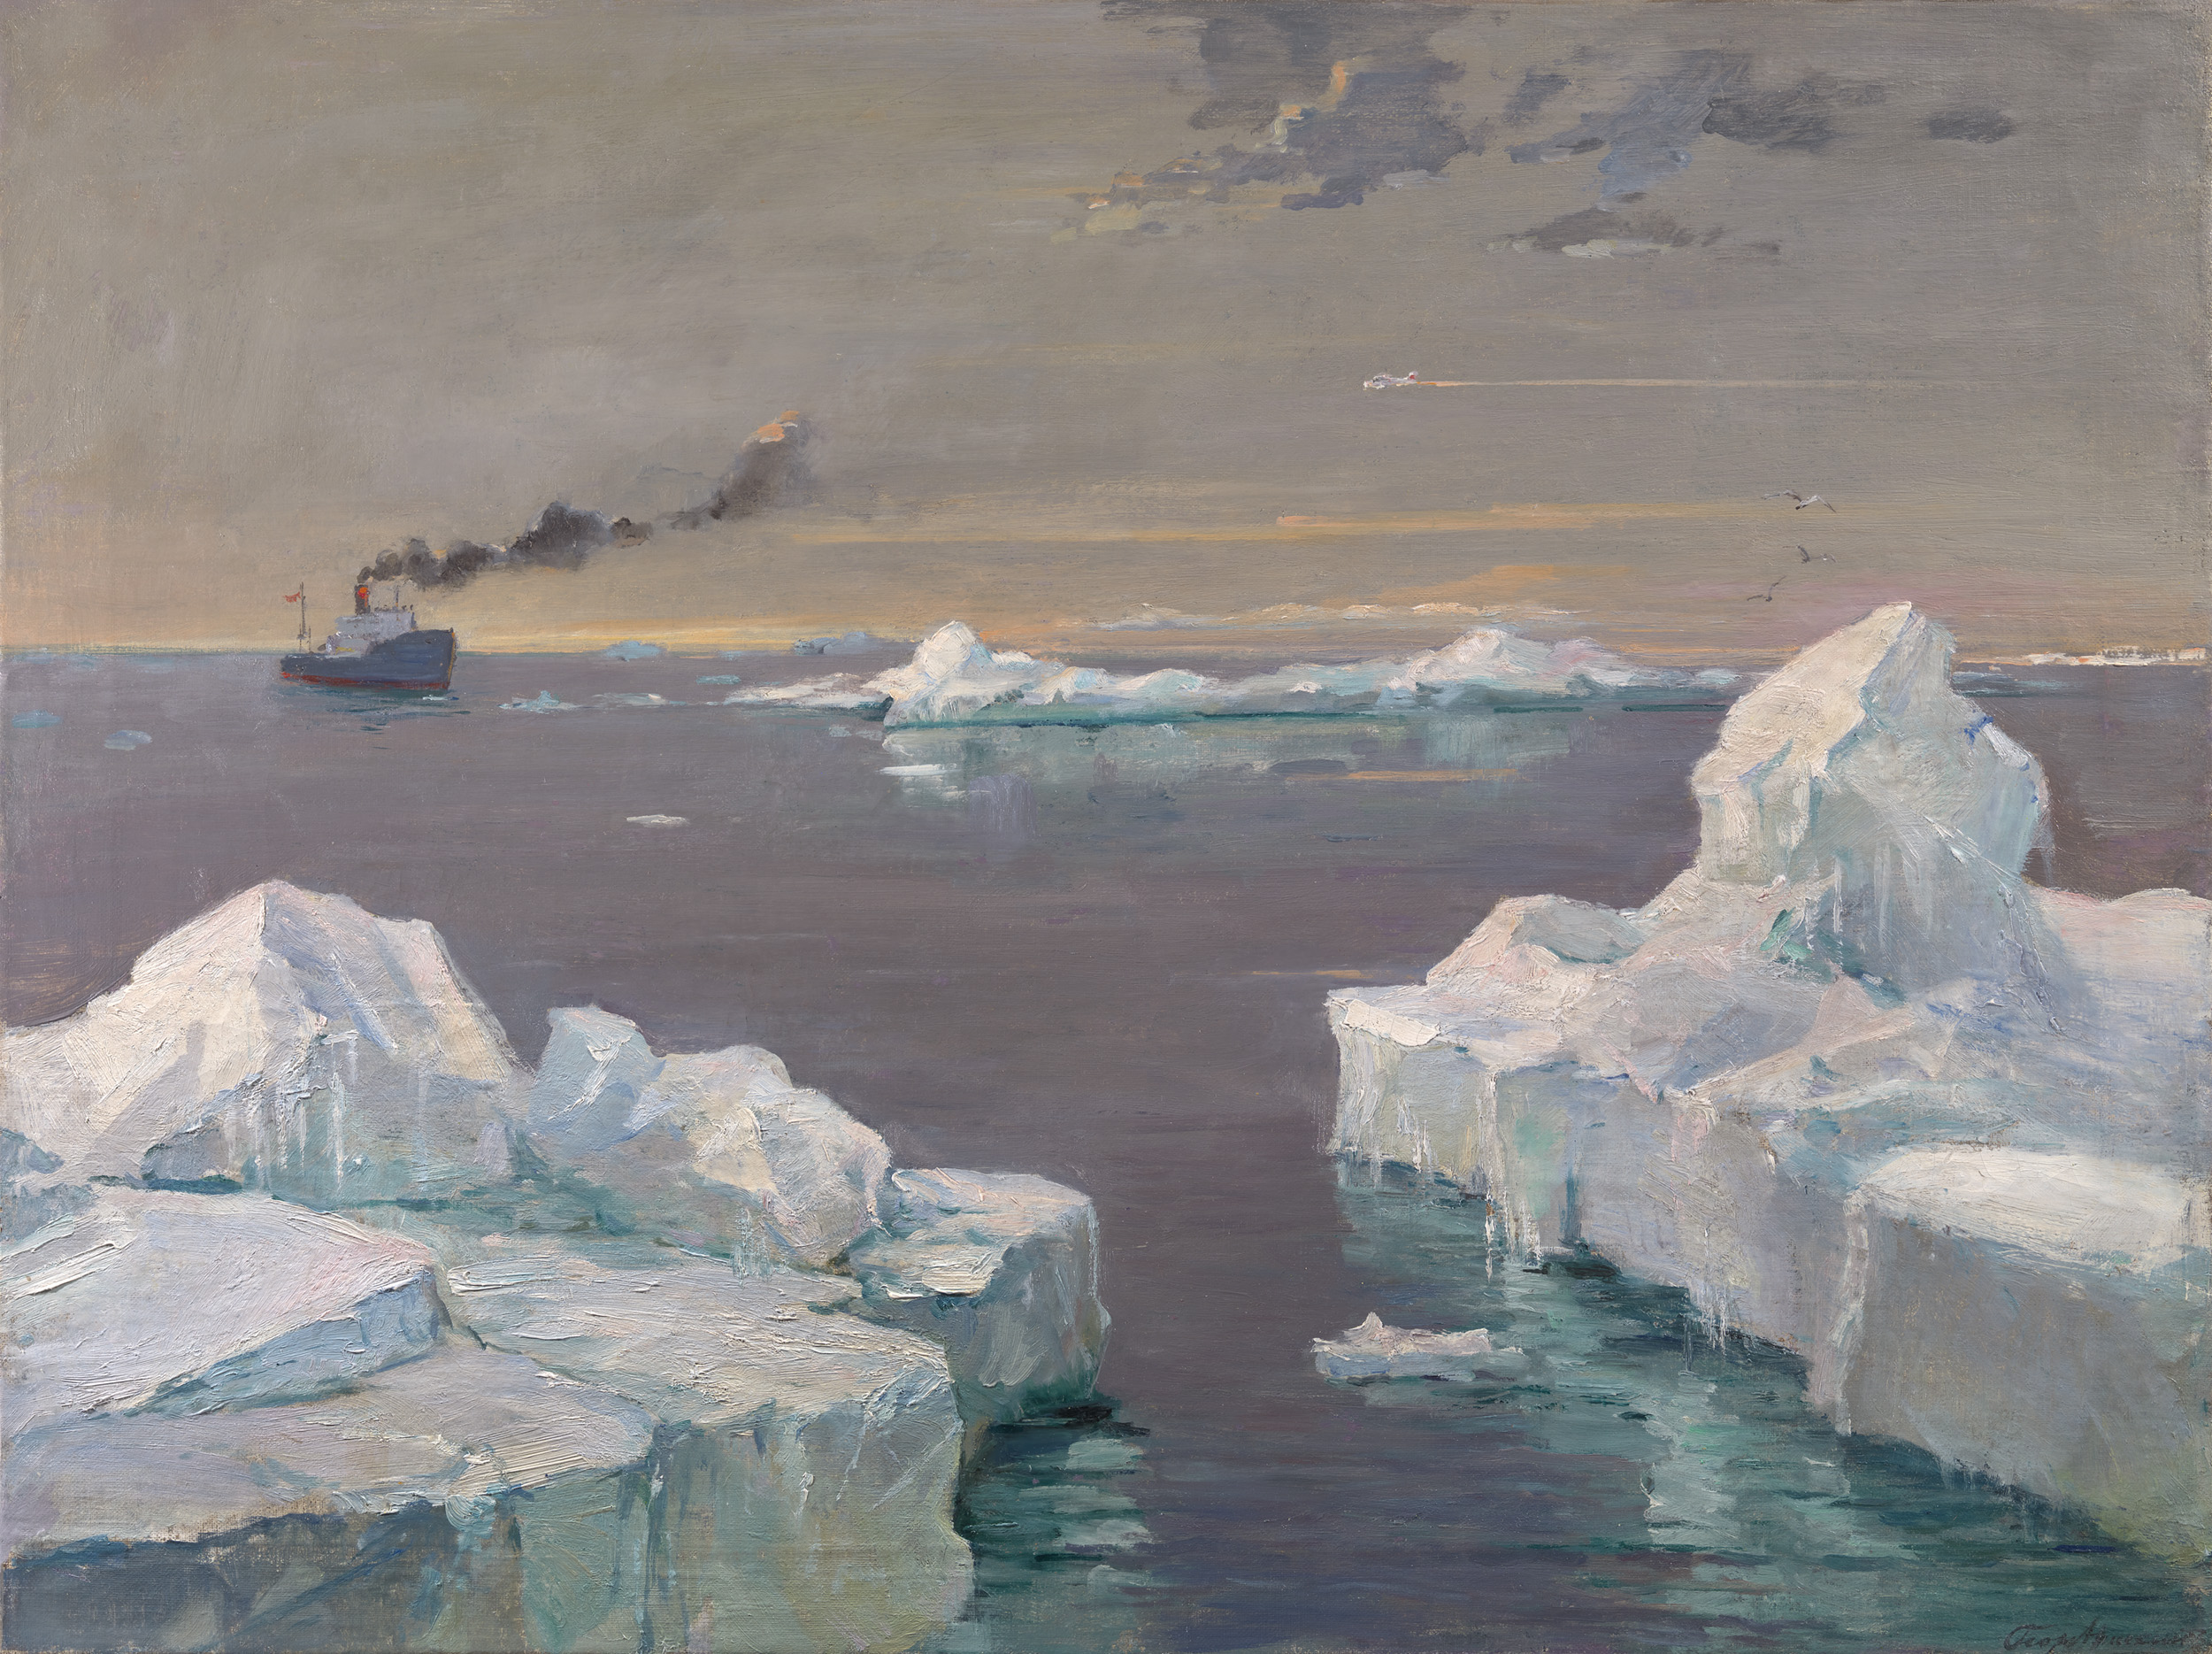 Lot 23, Georgy Nissky, Icebergs